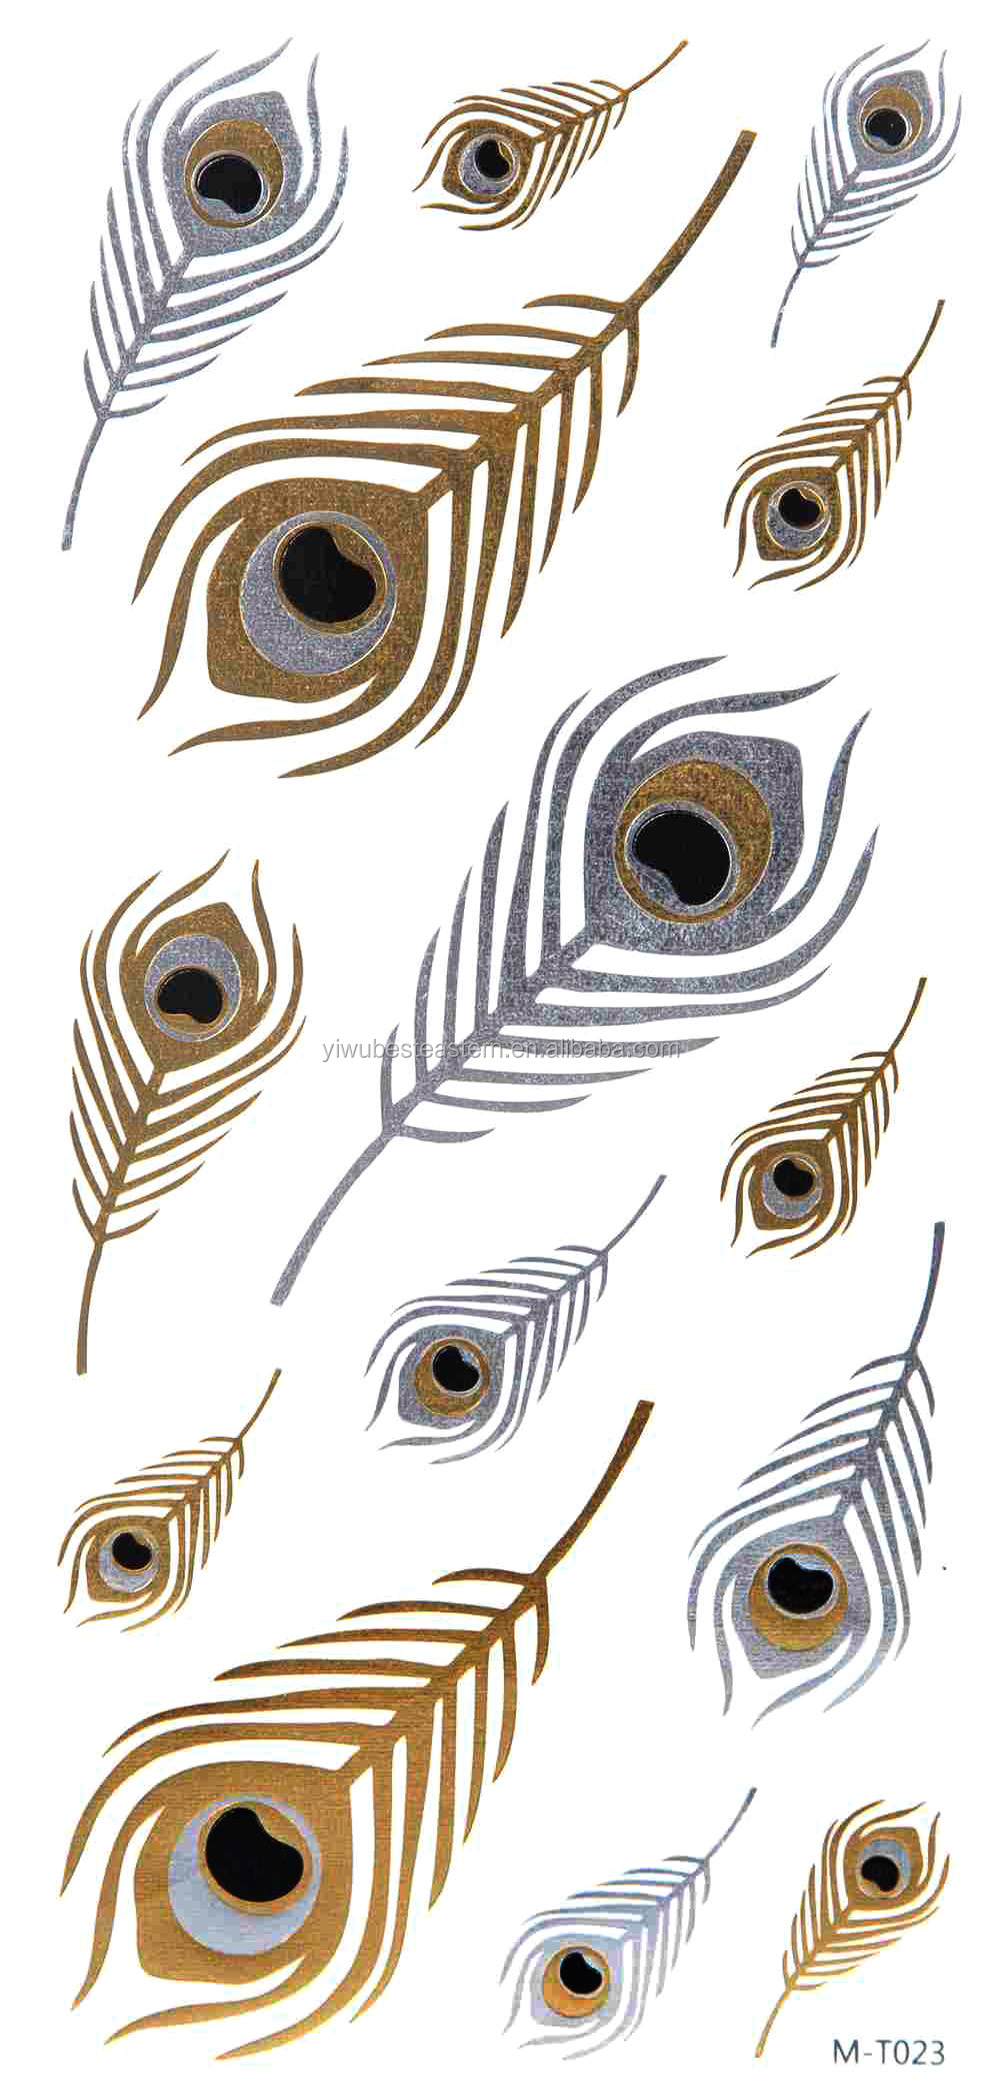 2015 New trends Gold Tattoo, Gold Tattoo Sticker, Gold Foil Tattoo